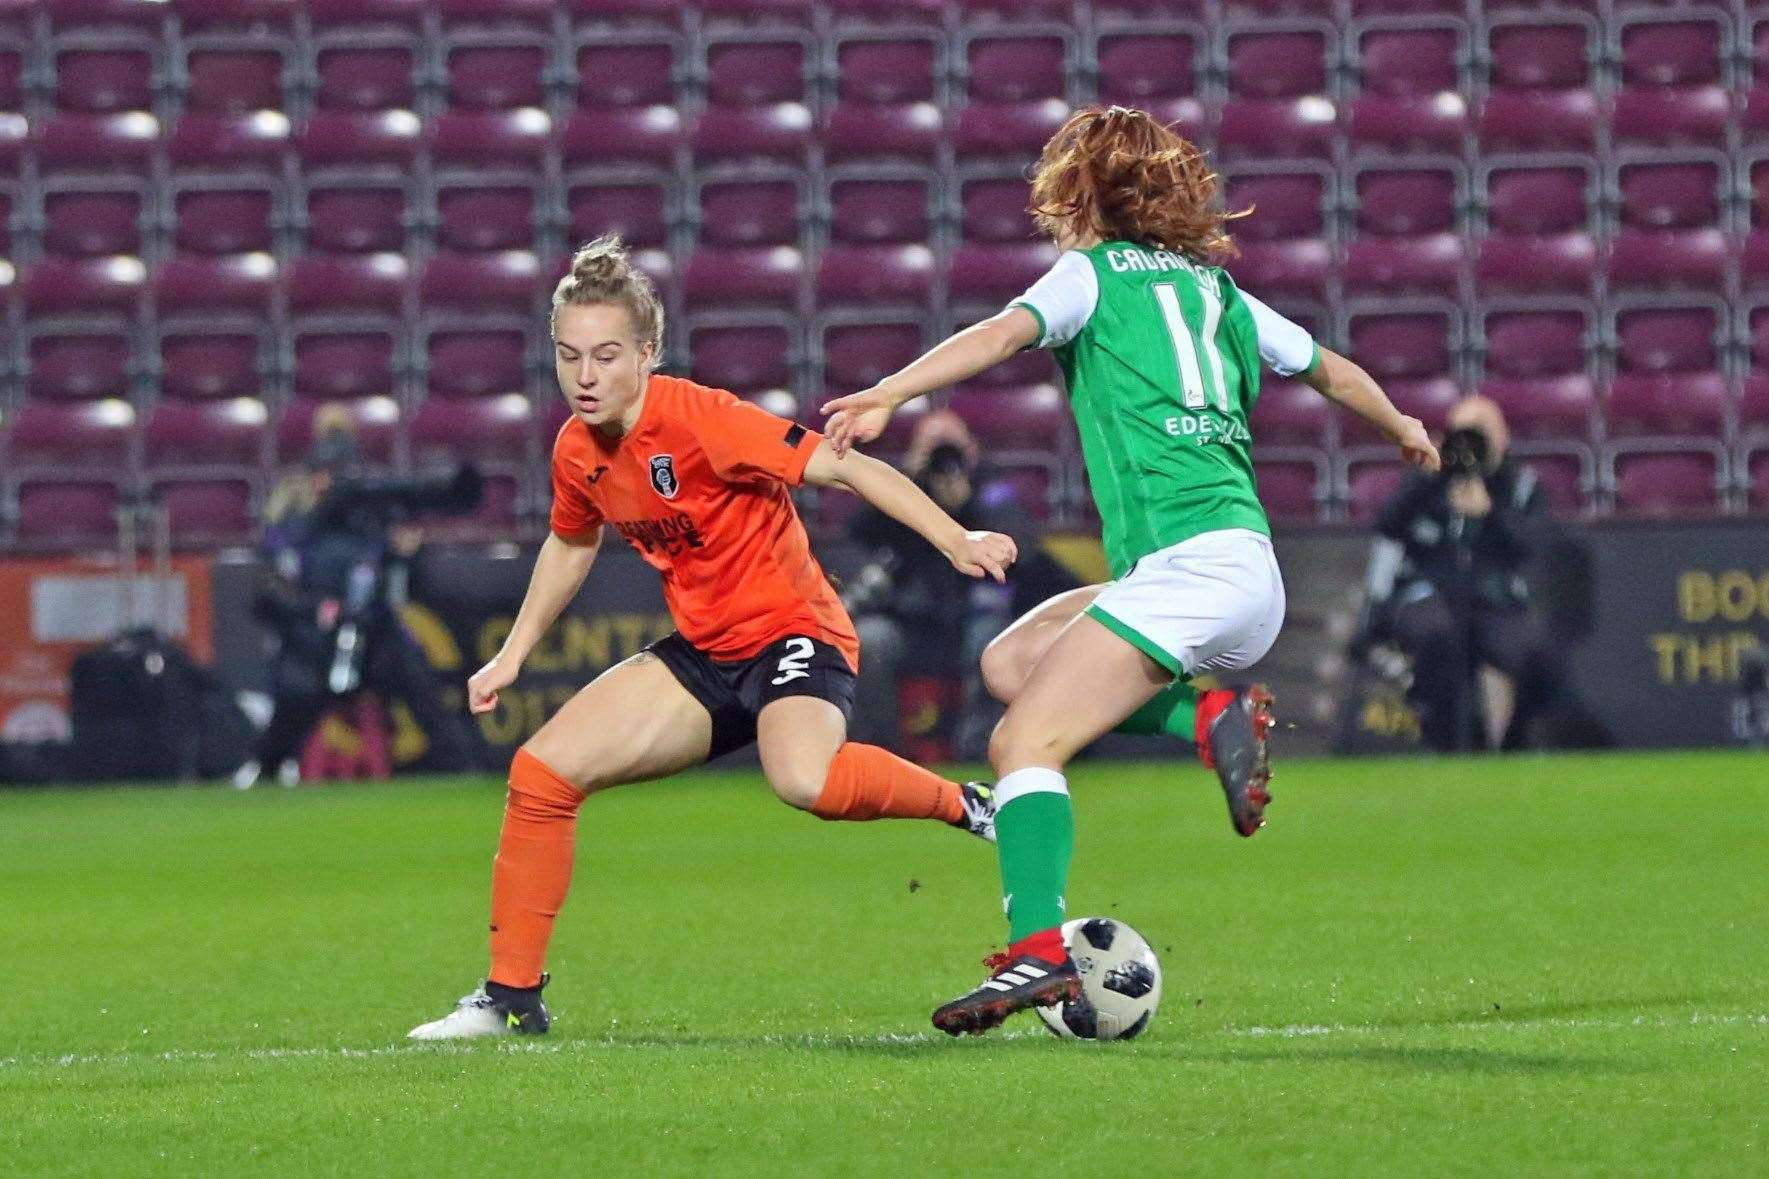 Rachel McLauchlan watches her opposite number closely as Glasgow City takes on Hibernian in the 2019 Scottish Cup final. Picture: Tommy Hughes